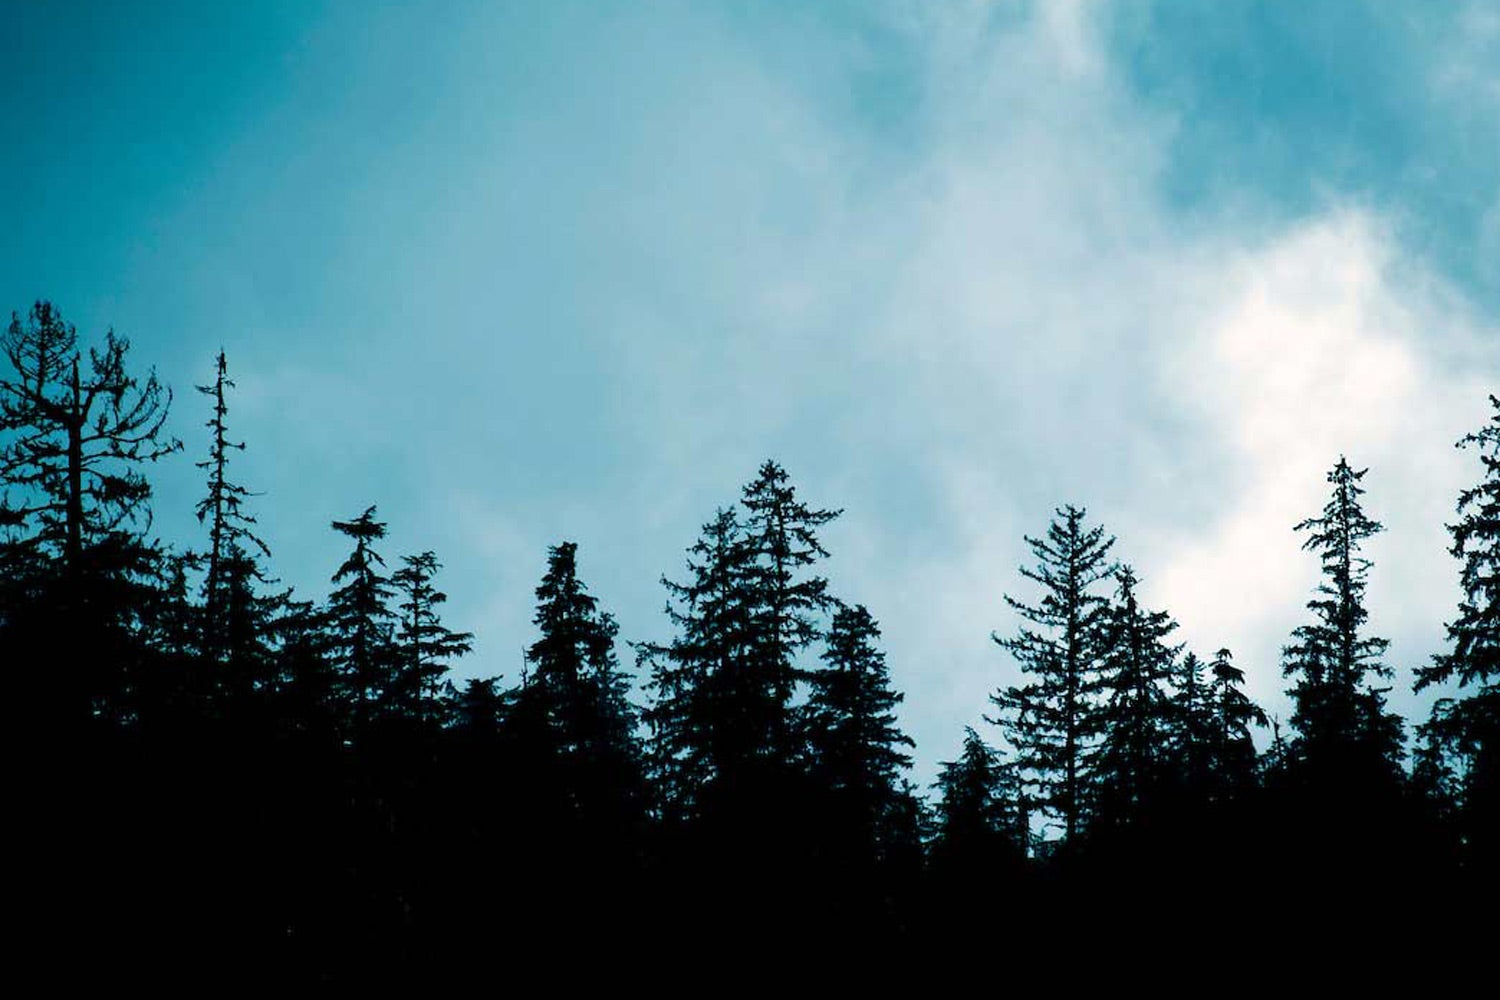 A silhouette of evergreen trees against a blue sky